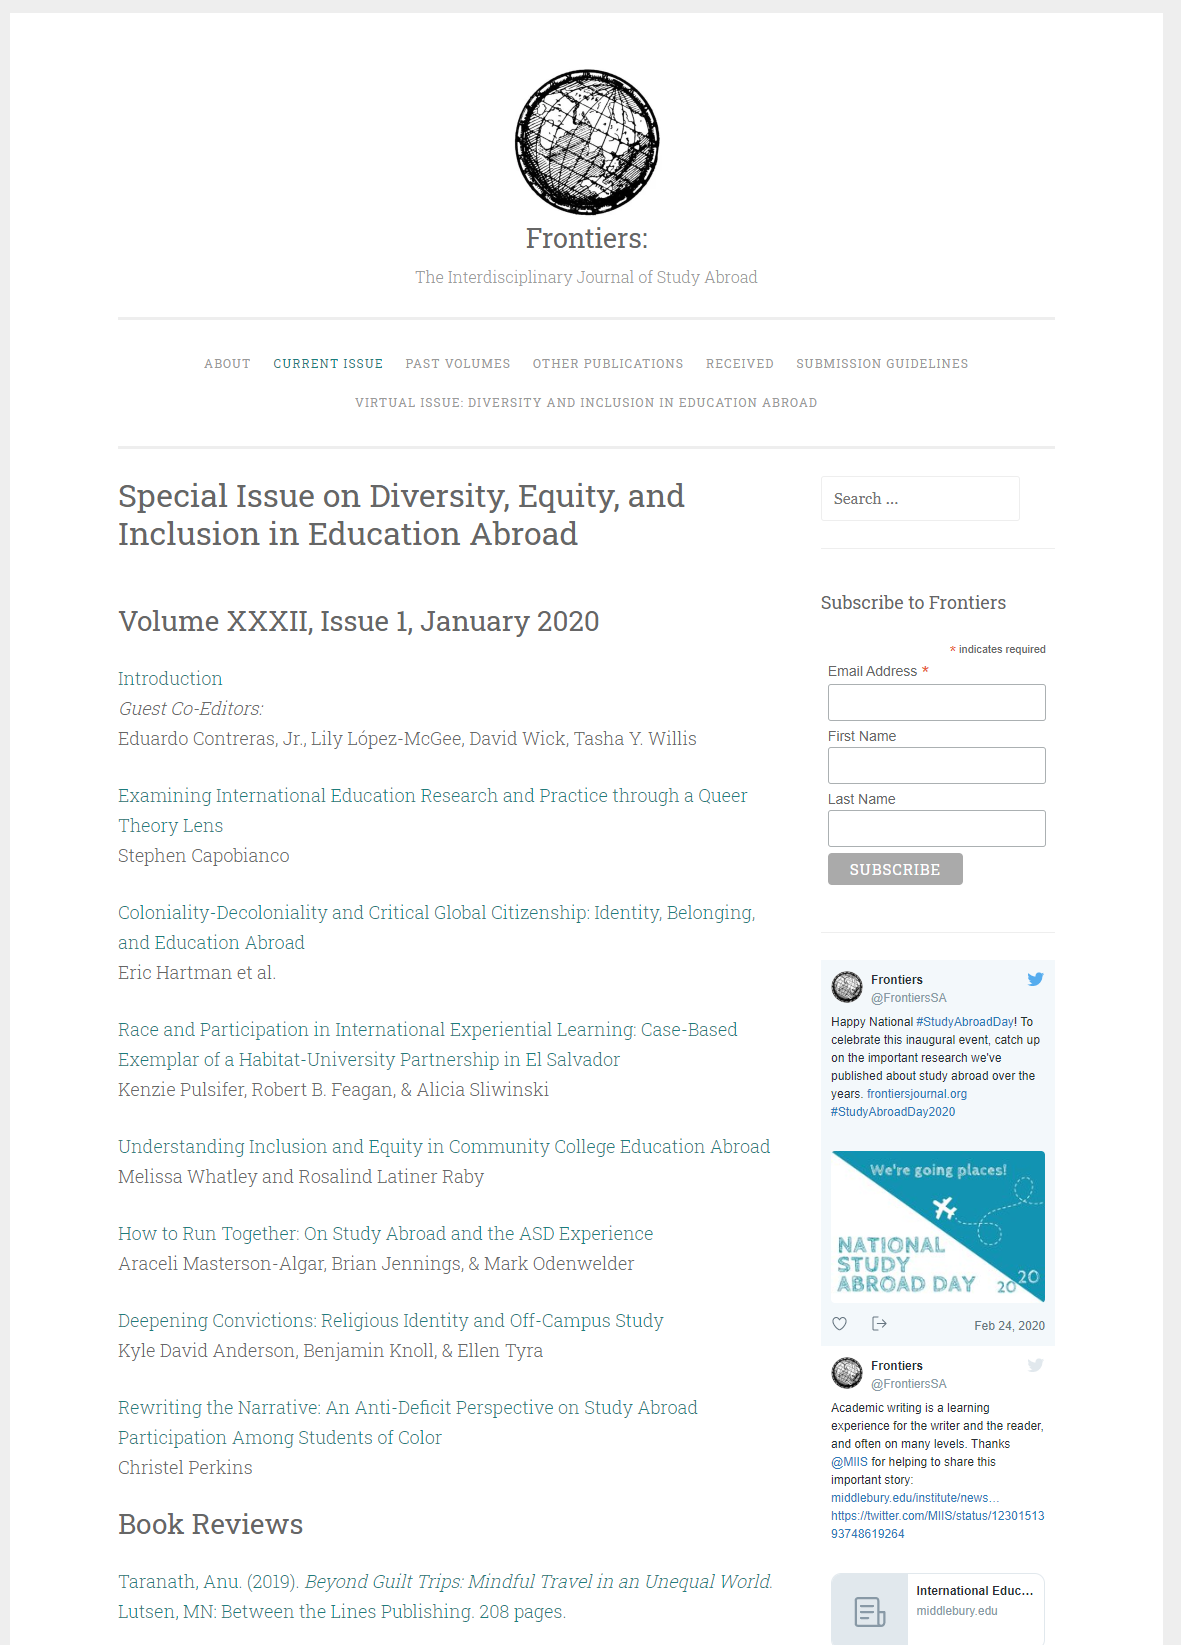 screenshot of original web publication of Special Issue on Diversity, Equity, and Inclusion in Education Abroad